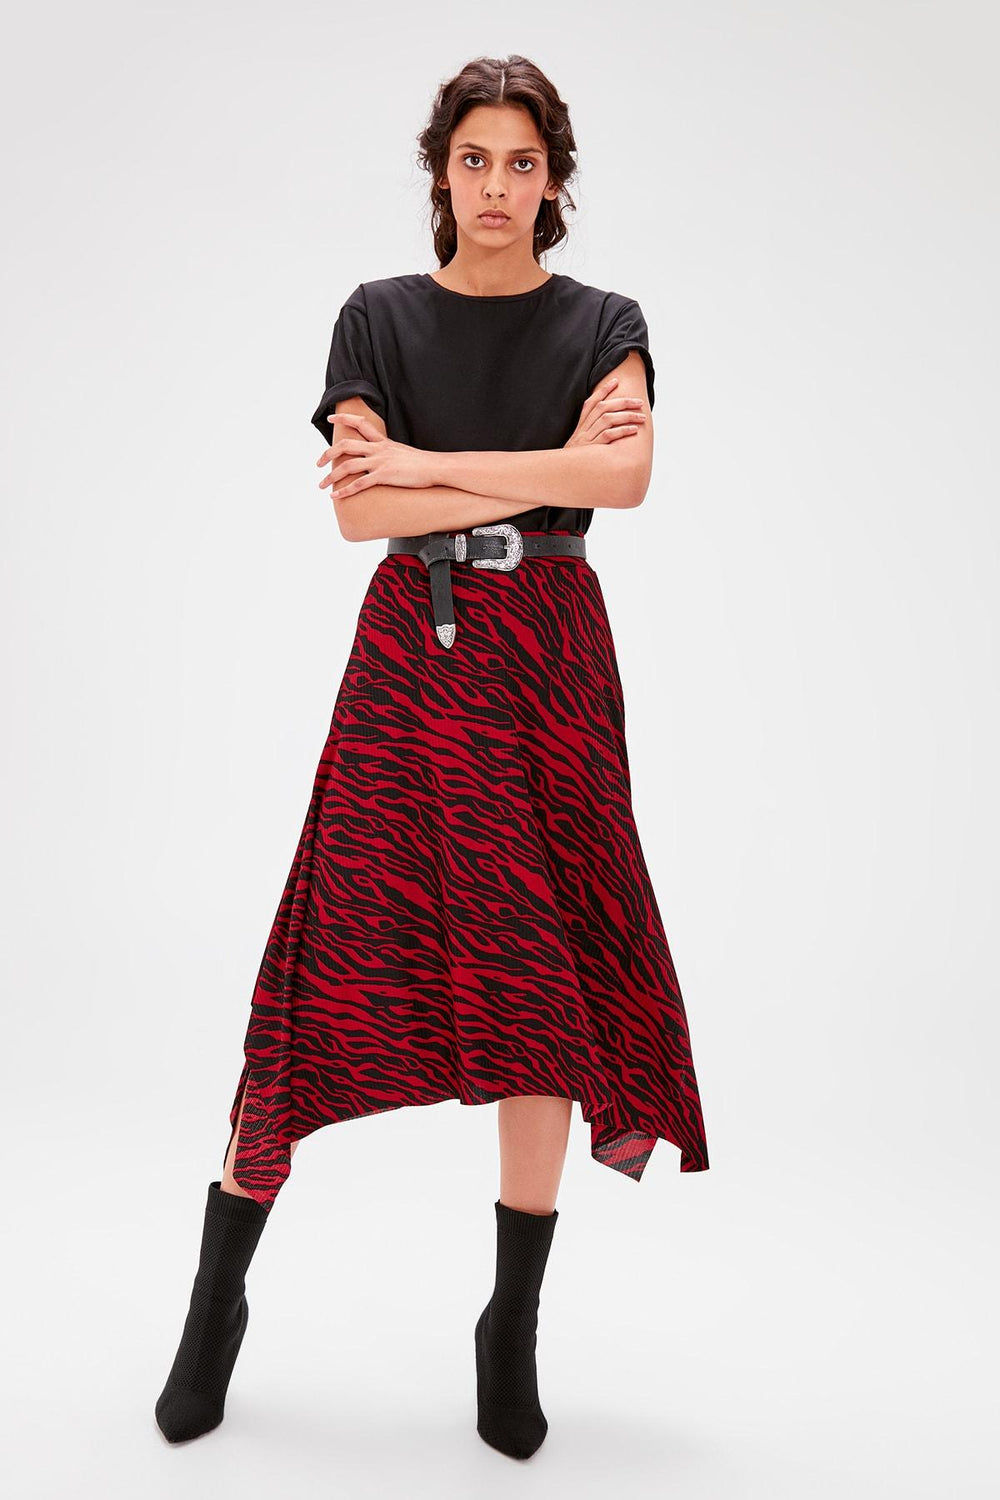 Miss Zut Miss Zut Burgundy Patterned Asymmetrical Knitted Skirt Miss Zut &CO